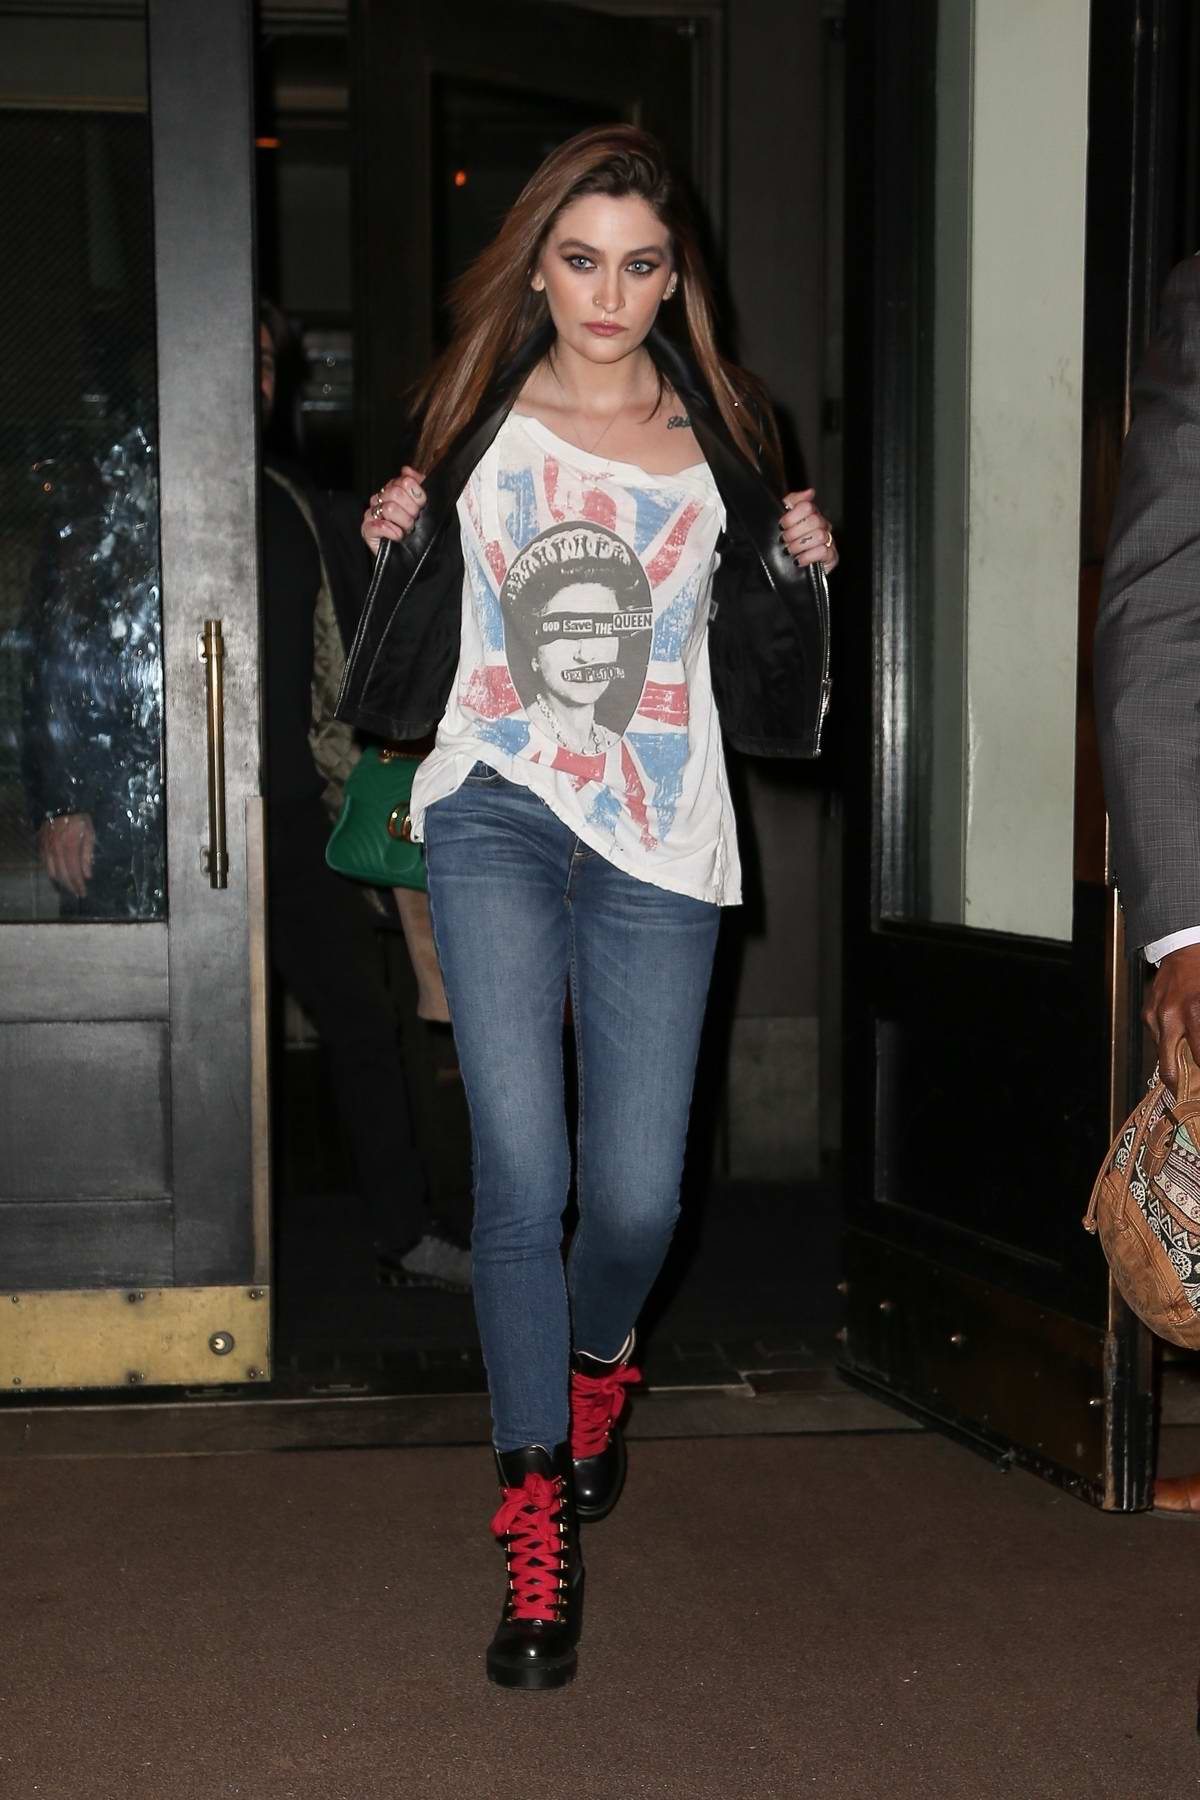 Paris Jackson shows off her 'God Save The Queen' top as she steps out in New York City